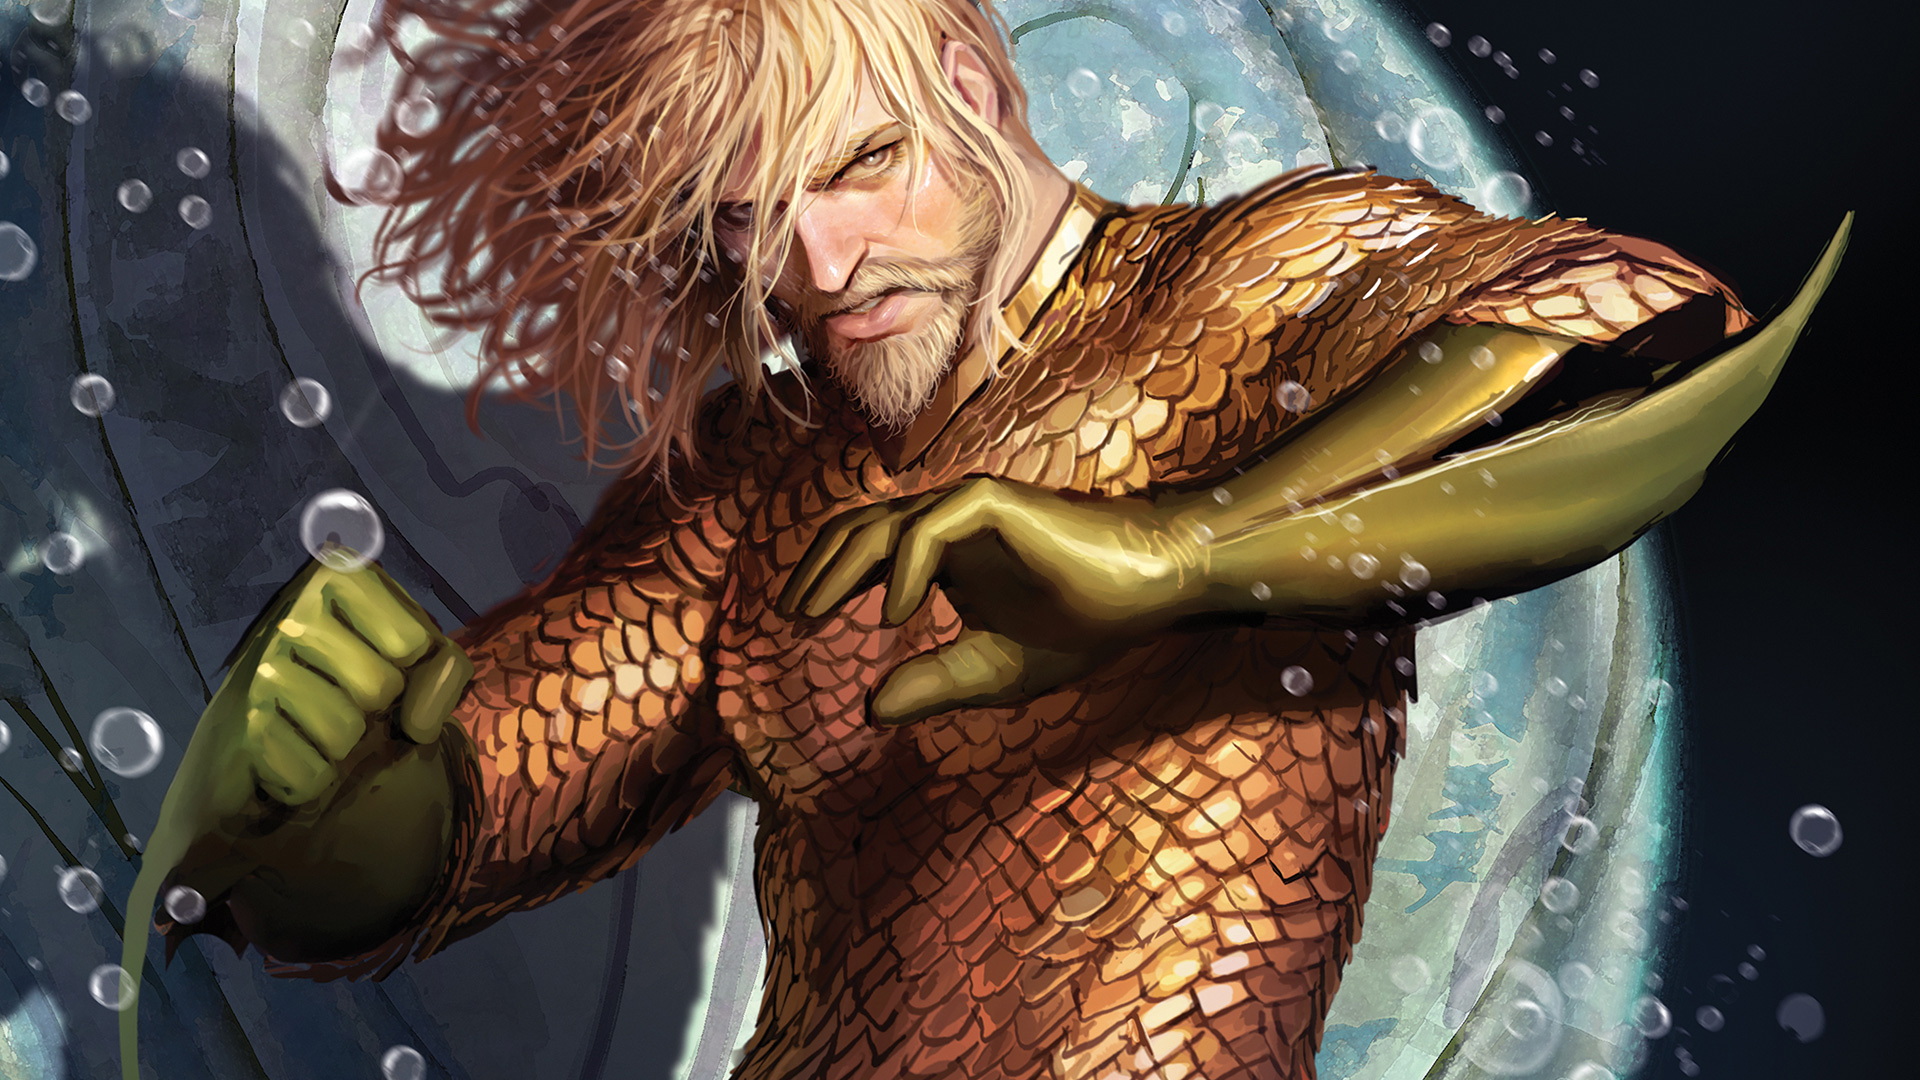 5 OUT OF 5 - This is the start of what looks to be a fantastic story arc. Abnett and Sejic make a great creative team that pushes Aquaman forward and have come out of the gate swinging. This is a must-read for any Aquaman fans and a great place to start for anyone looking to jump in.